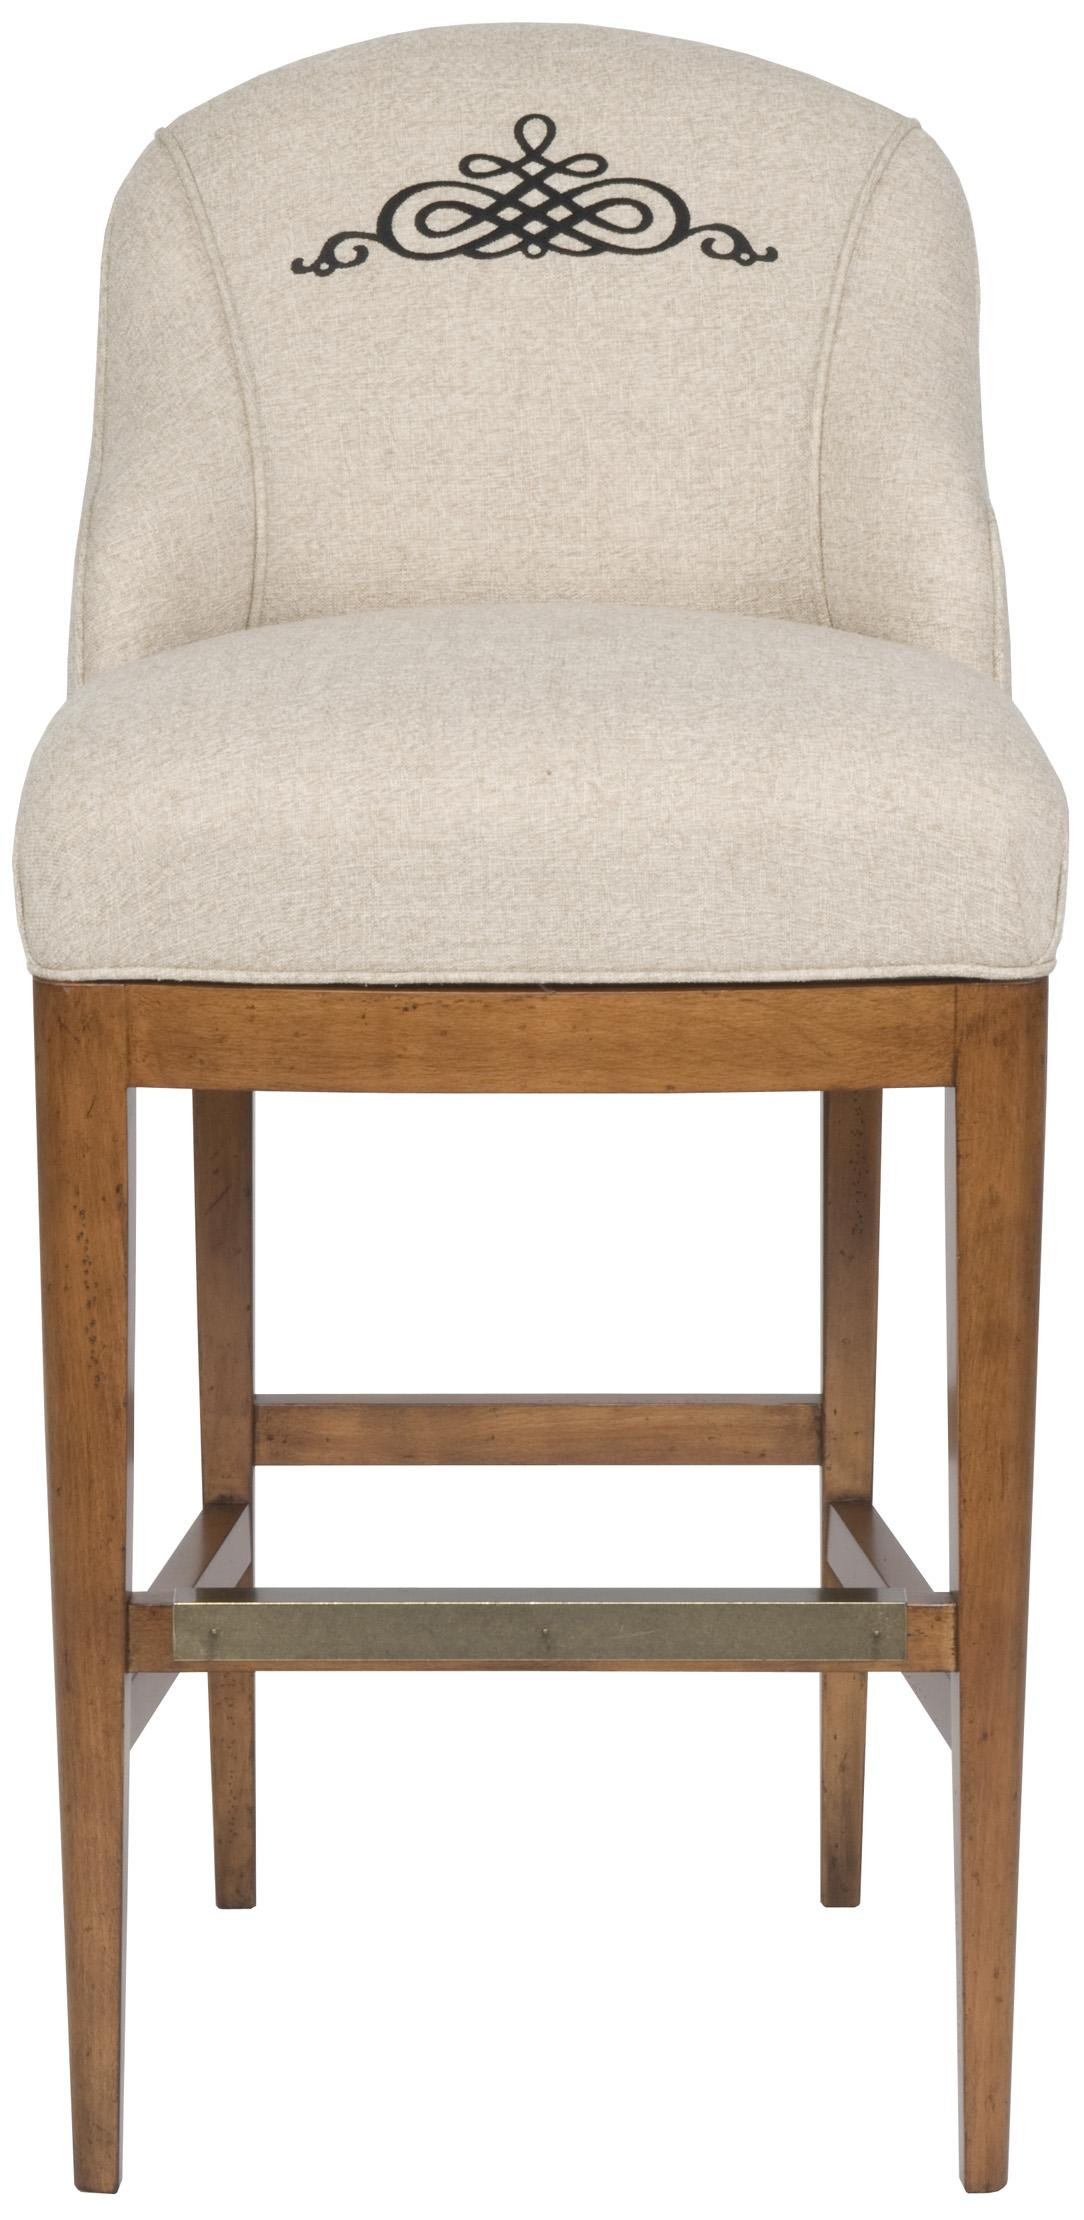 Accent Chairs Bar Stool by Vanguard Furniture at Sprintz Furniture